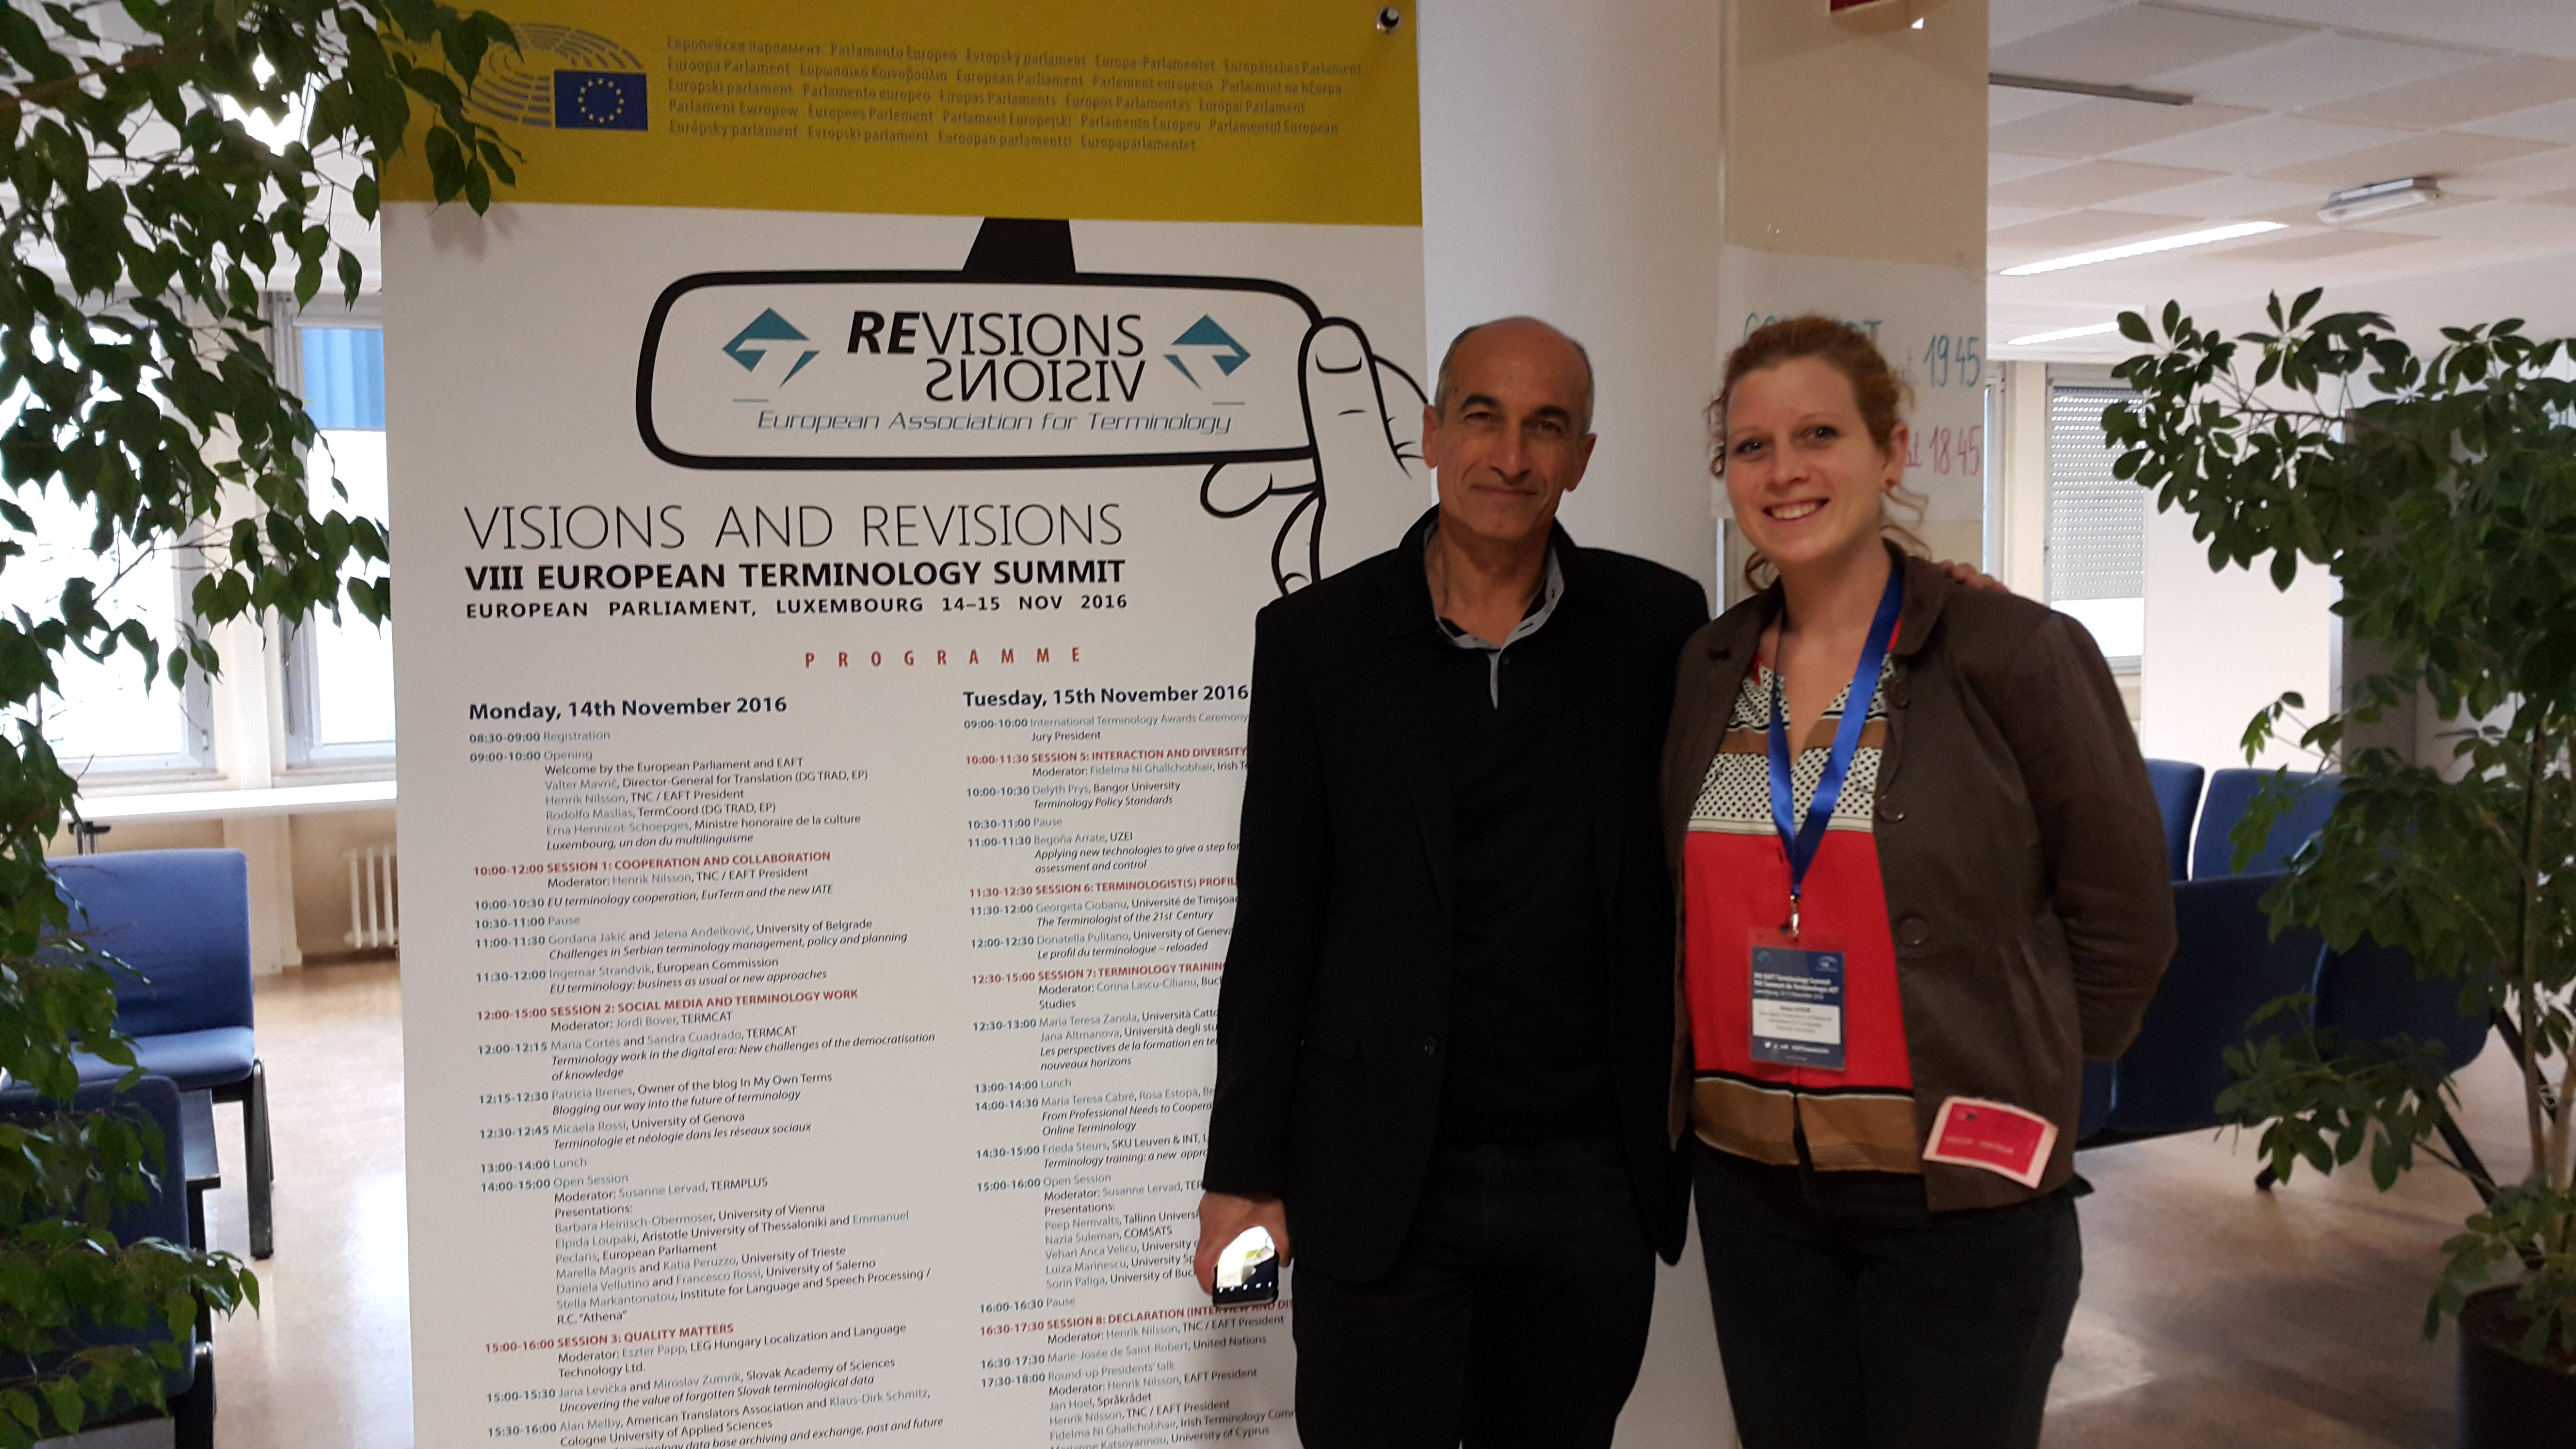 EFNIL at the European Terminology Summit 2016